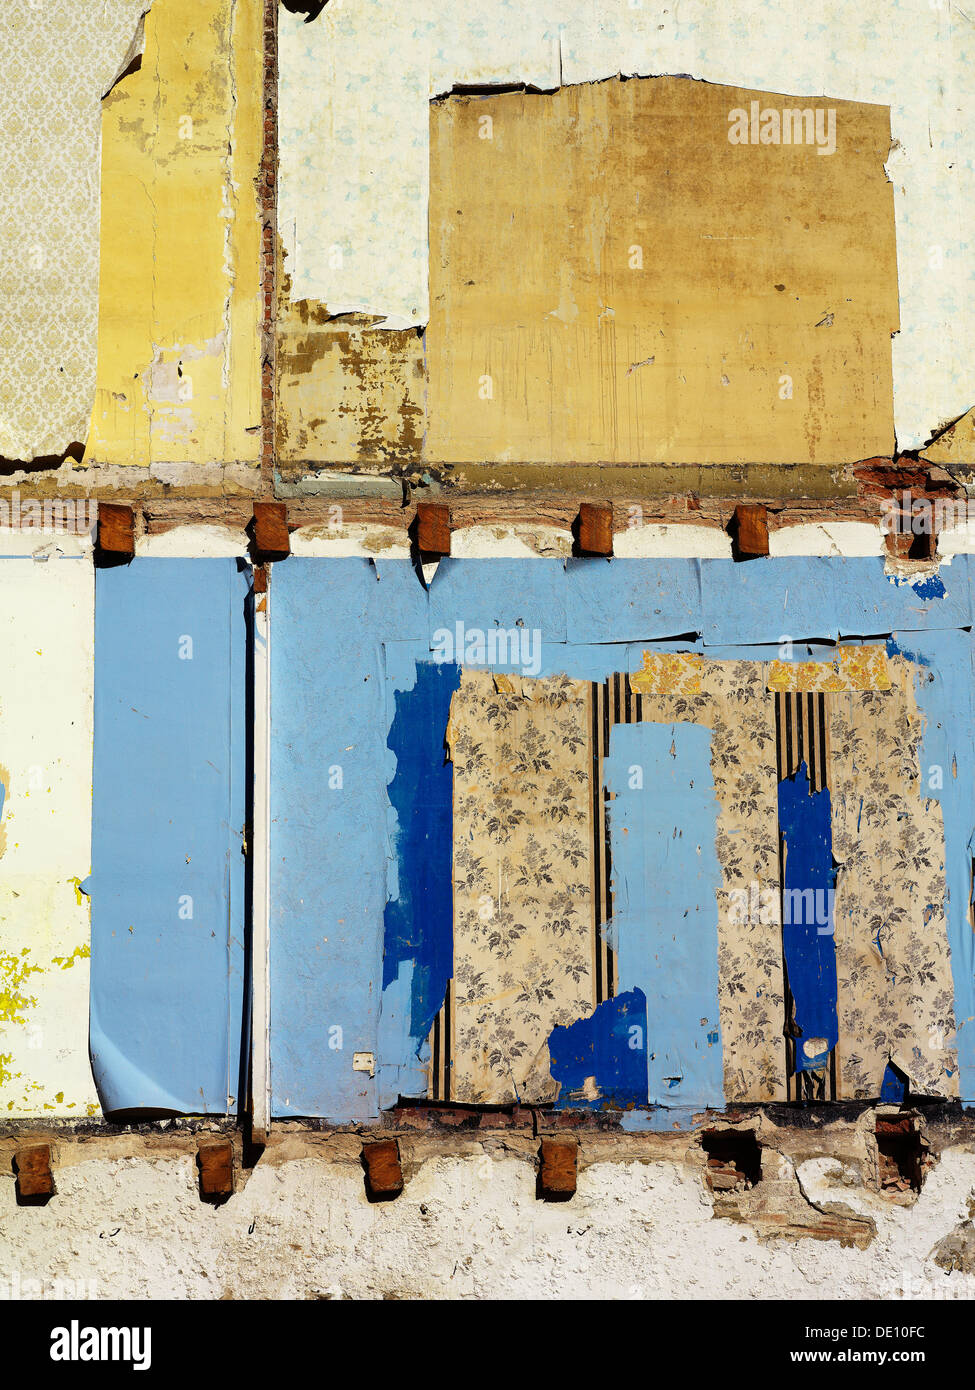 remaining wall of demolished building - Stock Image